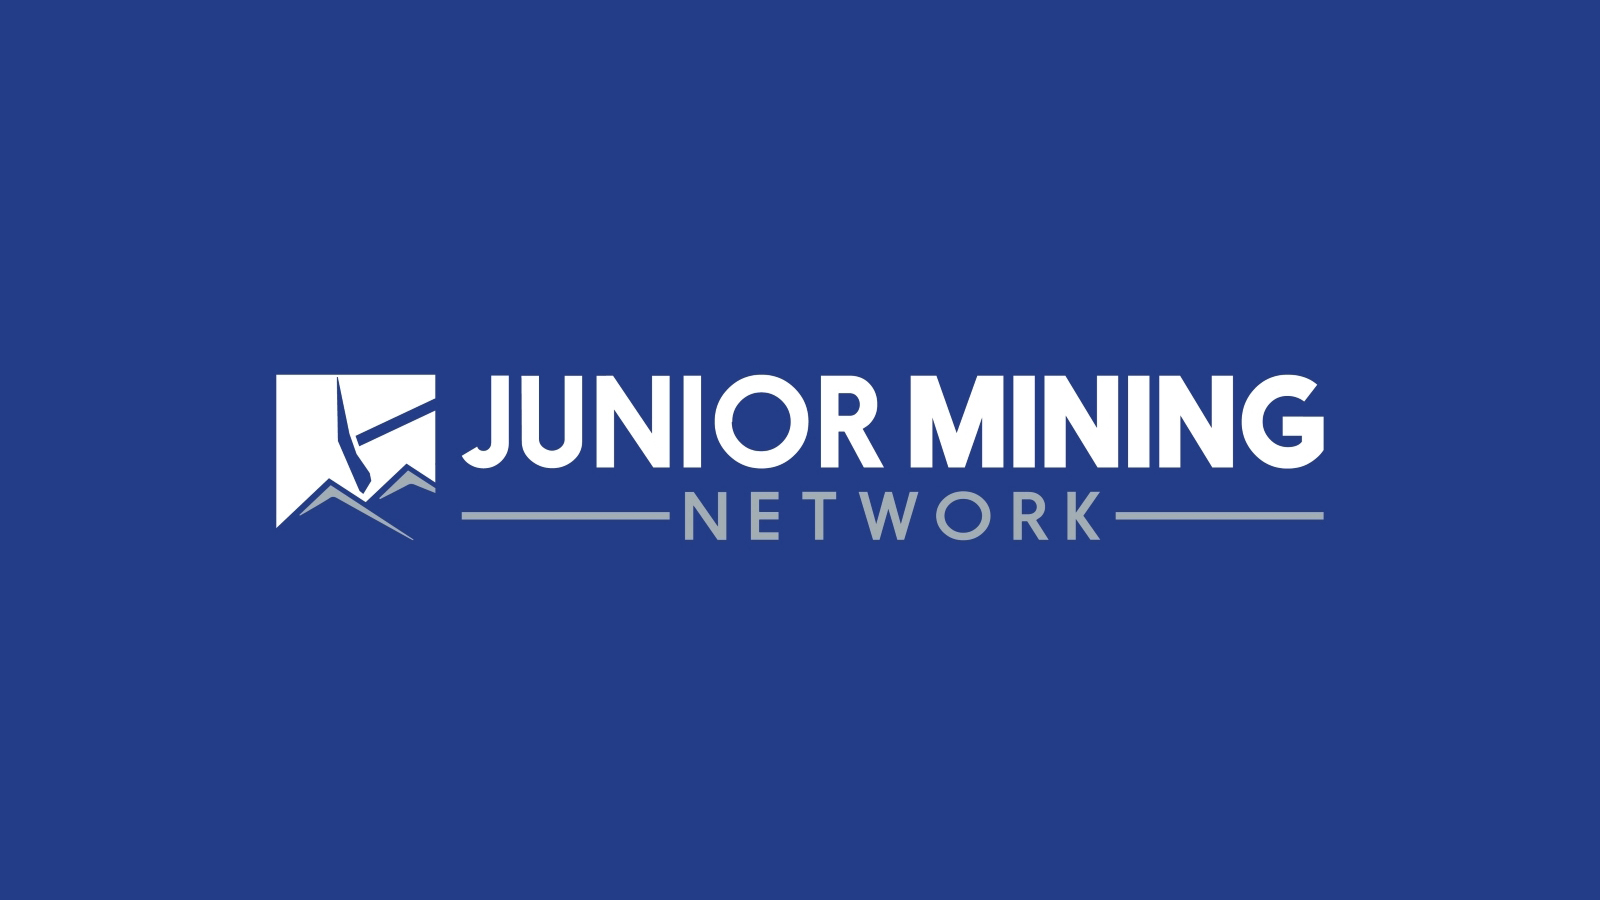 Cannot view this image? Visit: https://www.juniorminingnetwork.com/images/news/newsfile/32391_rsz_palami2.jpg